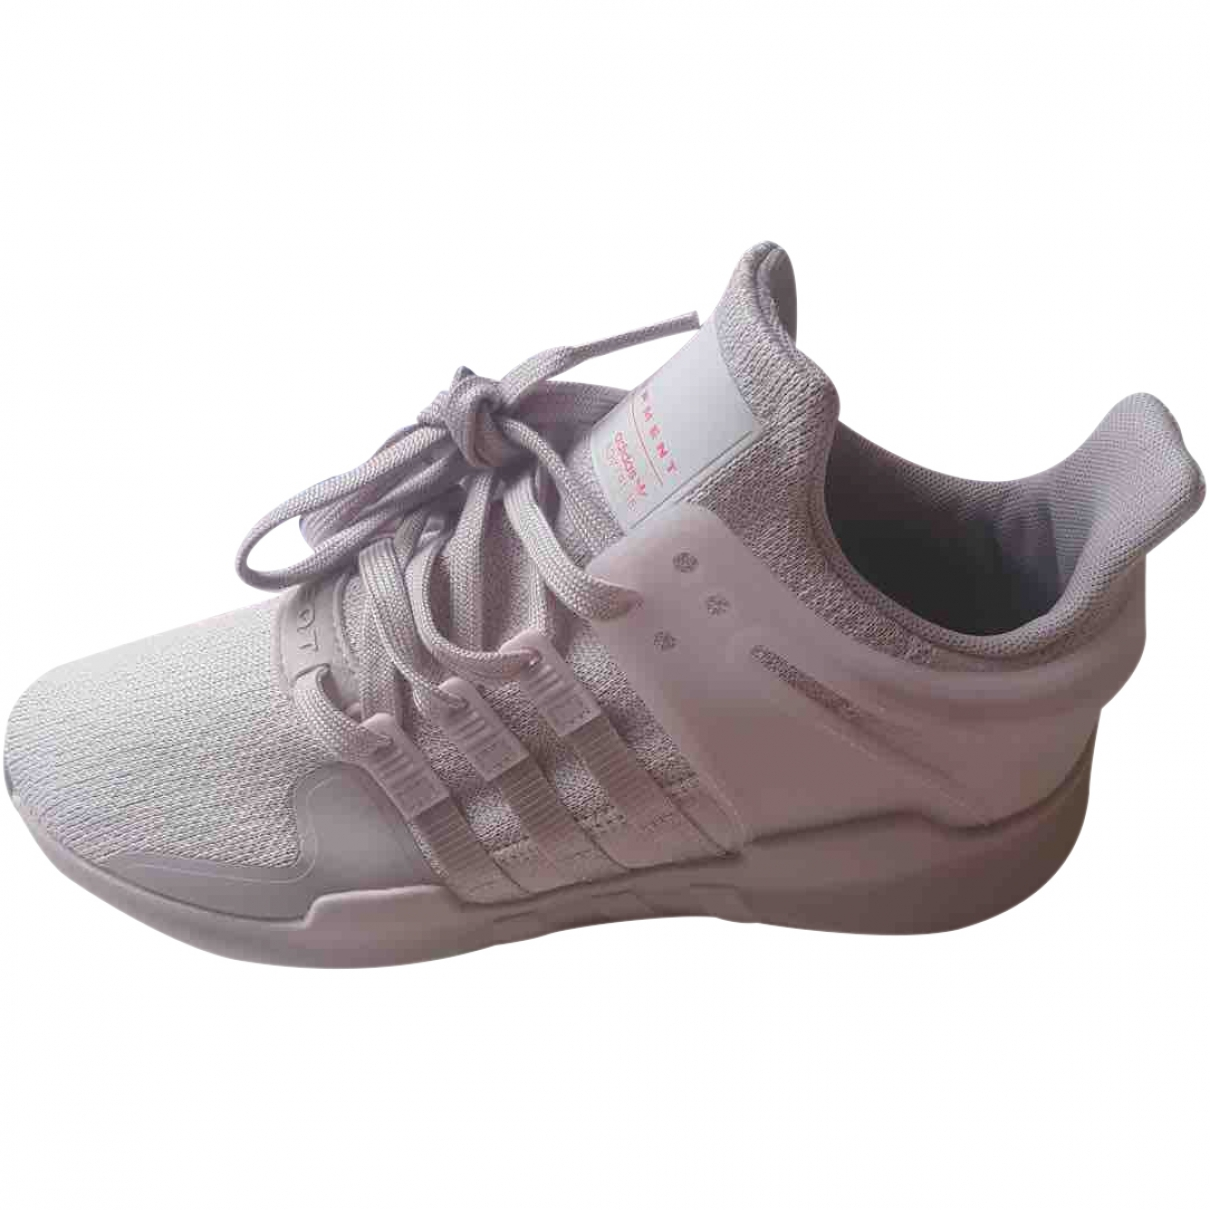 Adidas EQT Support White Rubber Trainers for Women 38 EU